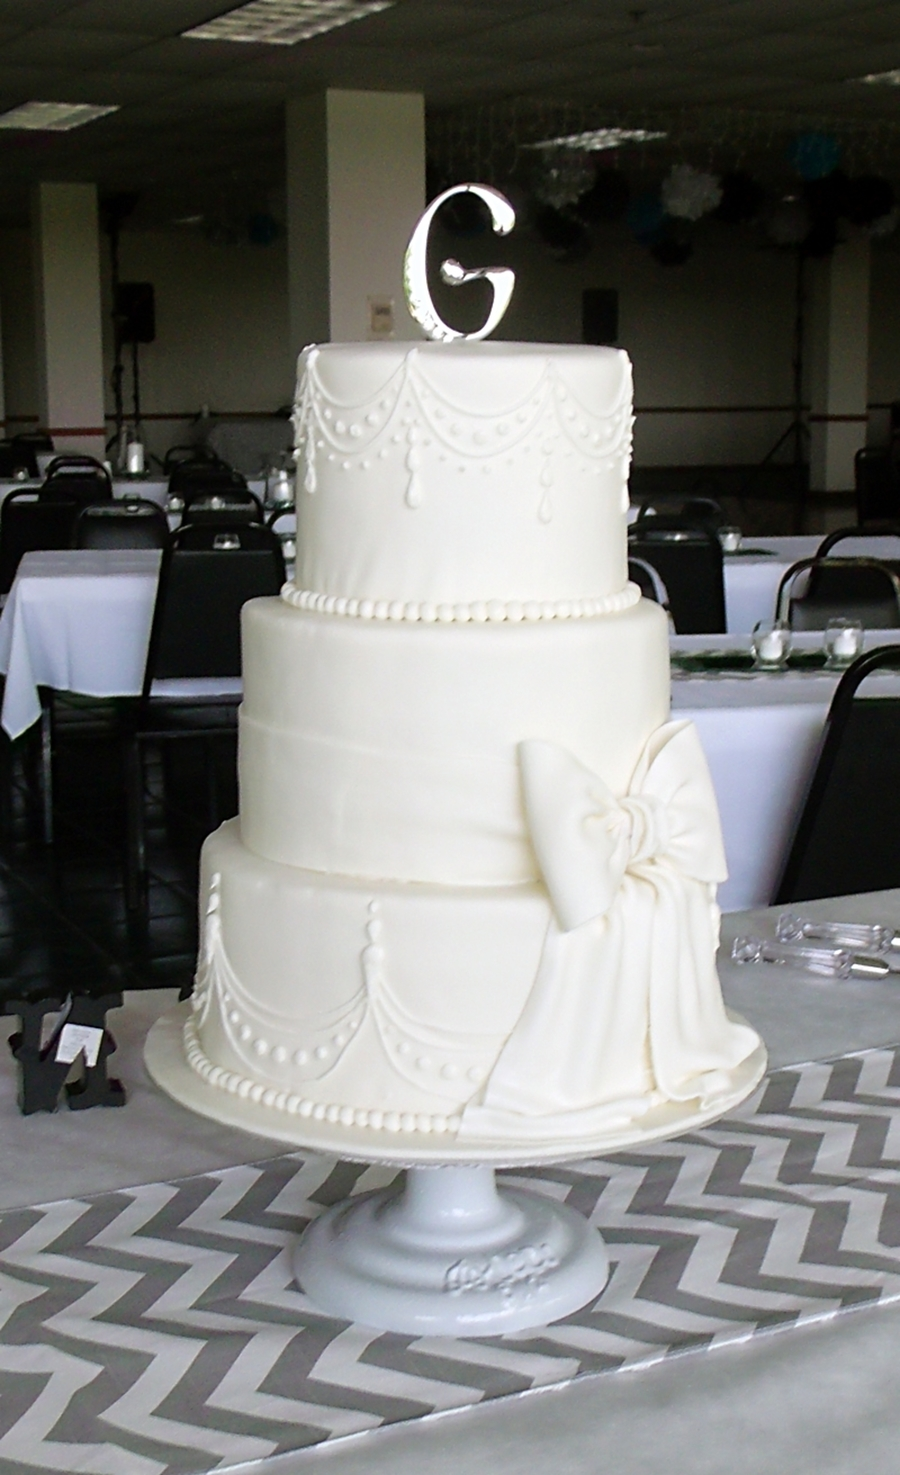 Colleen's All-White Wedding Cake on Cake Central